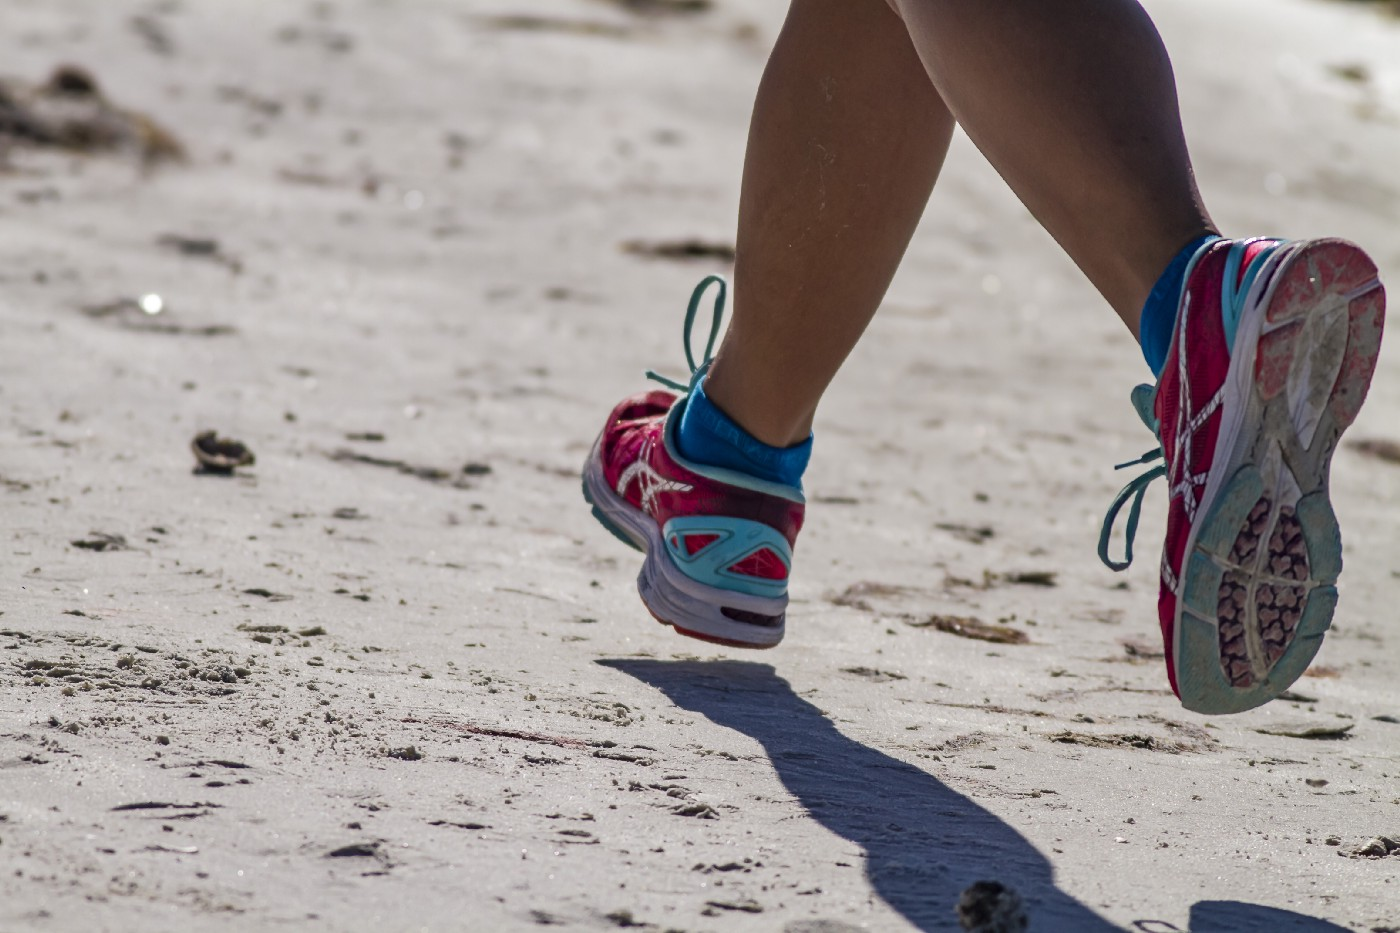 Woman's legs and running shoes on sandy surface